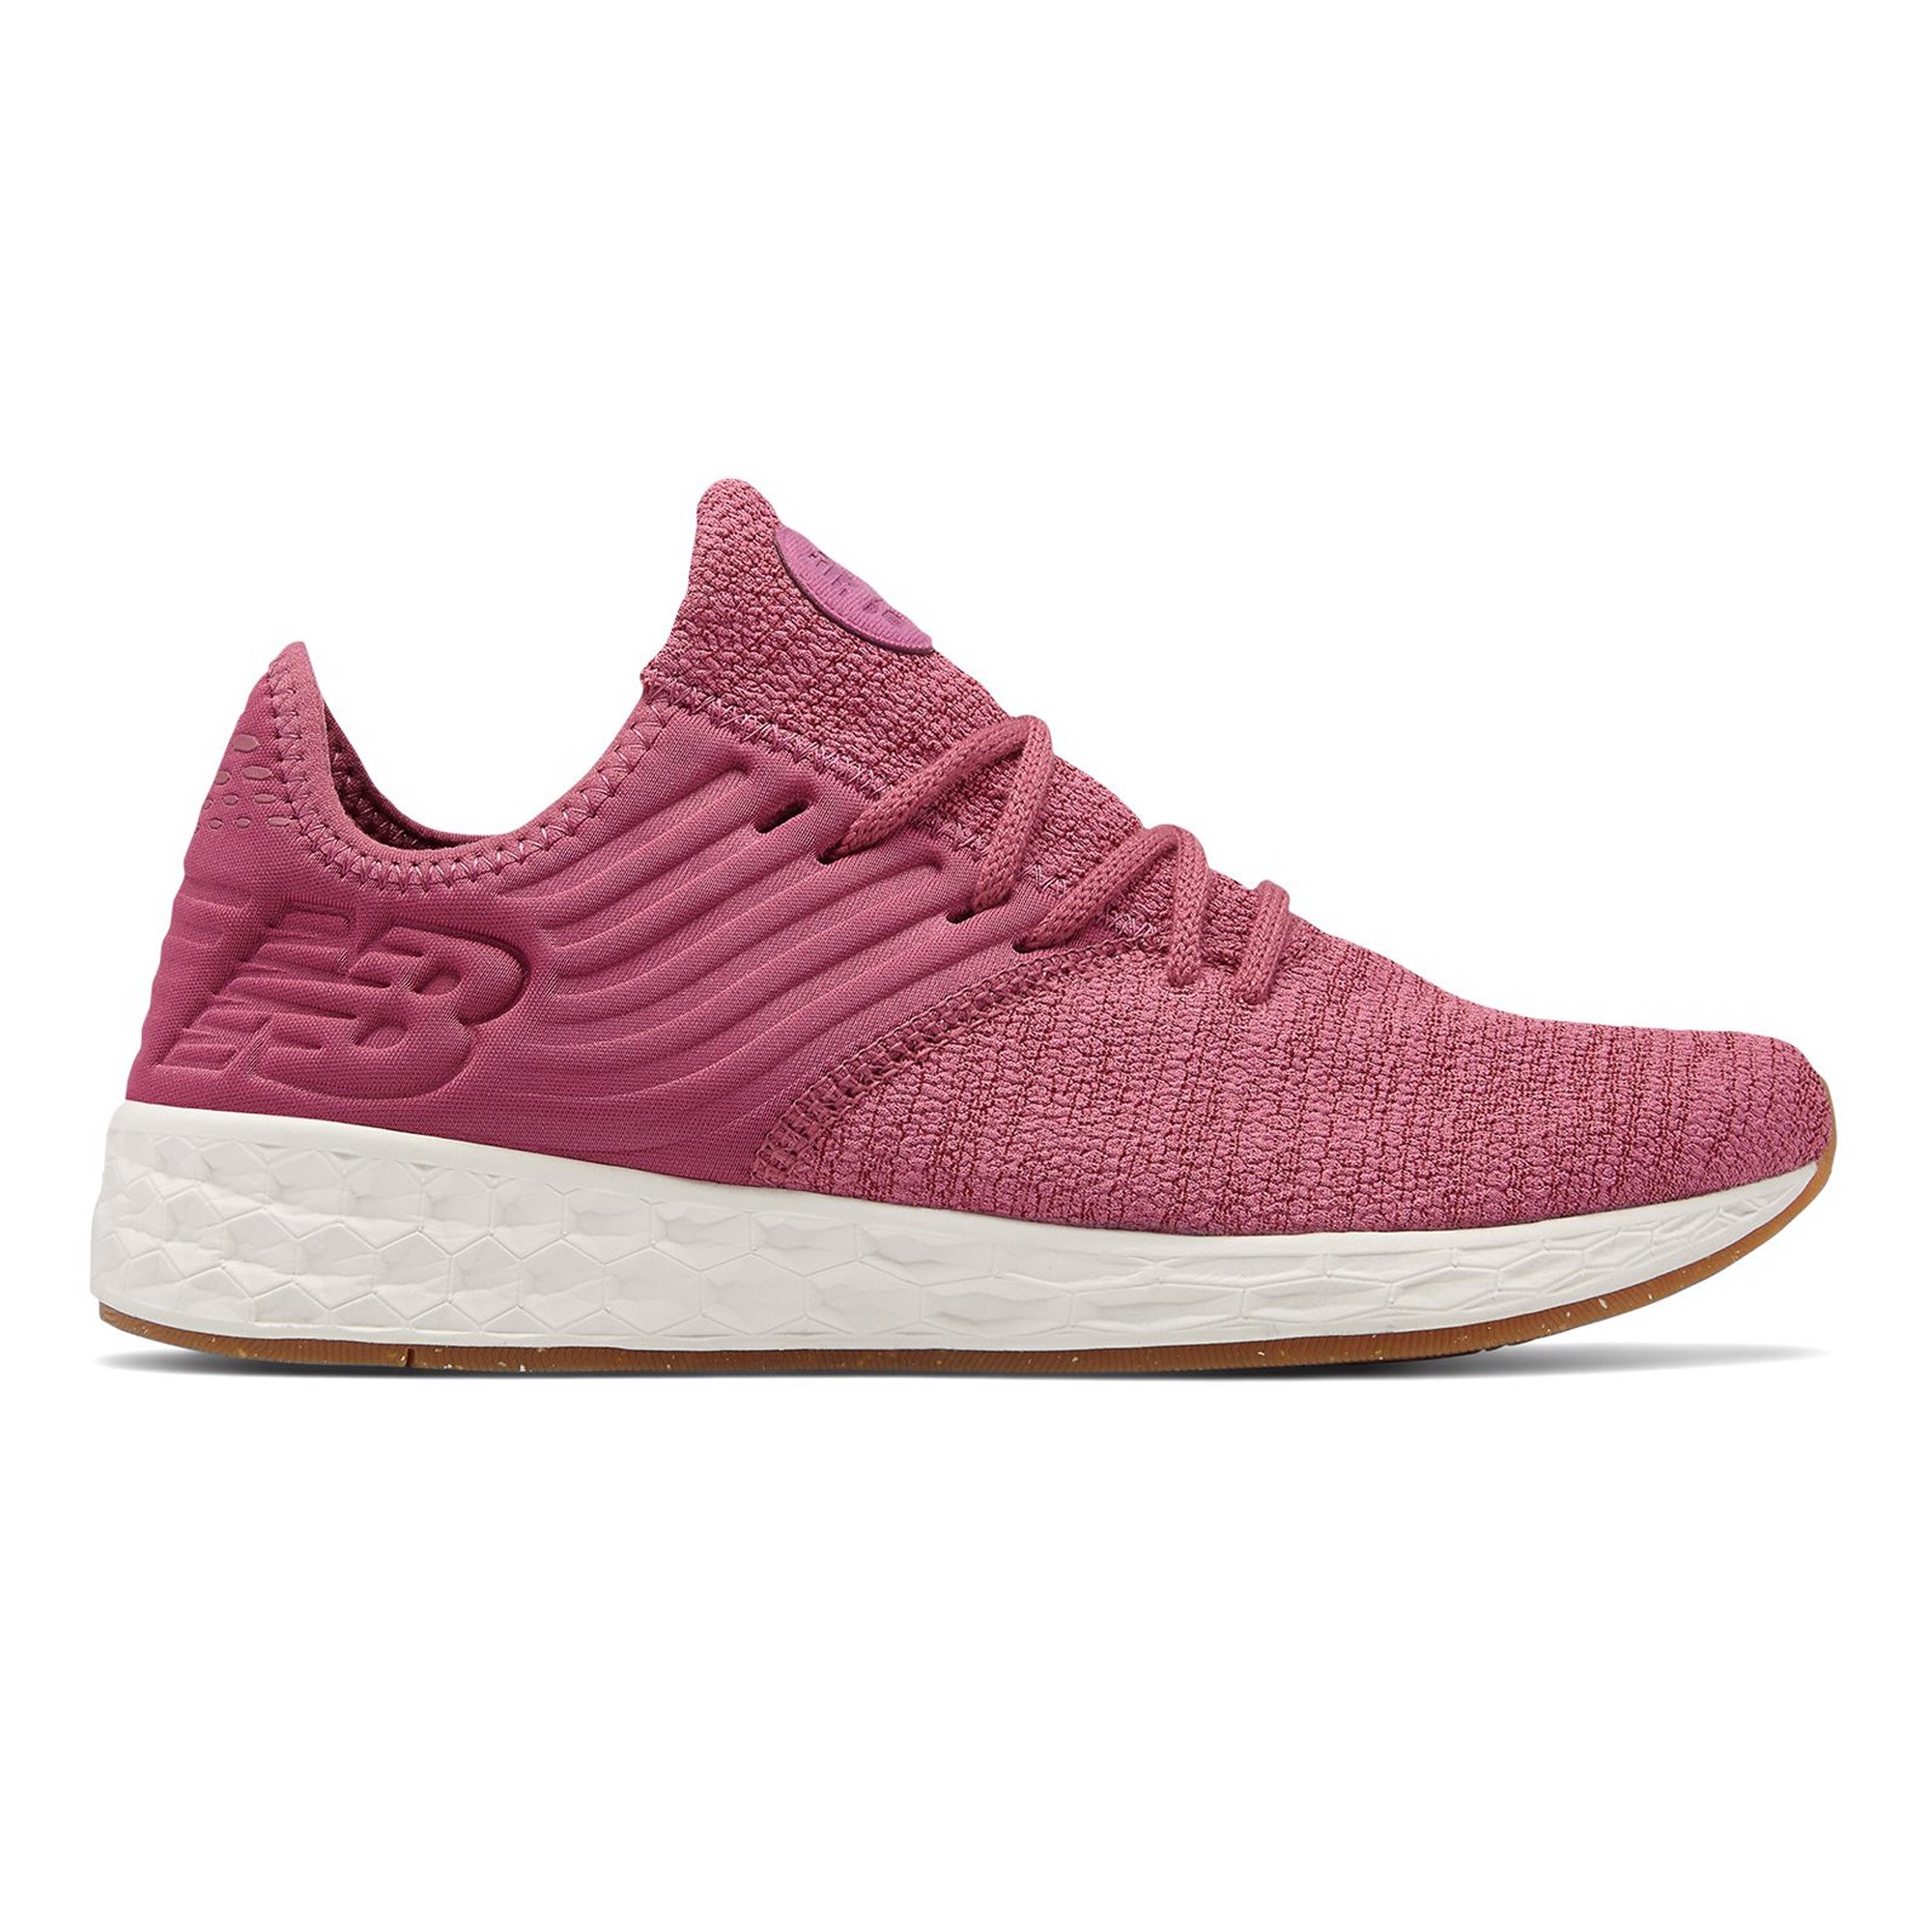 New Balance Fresh Foam Cruz Decon - Pink